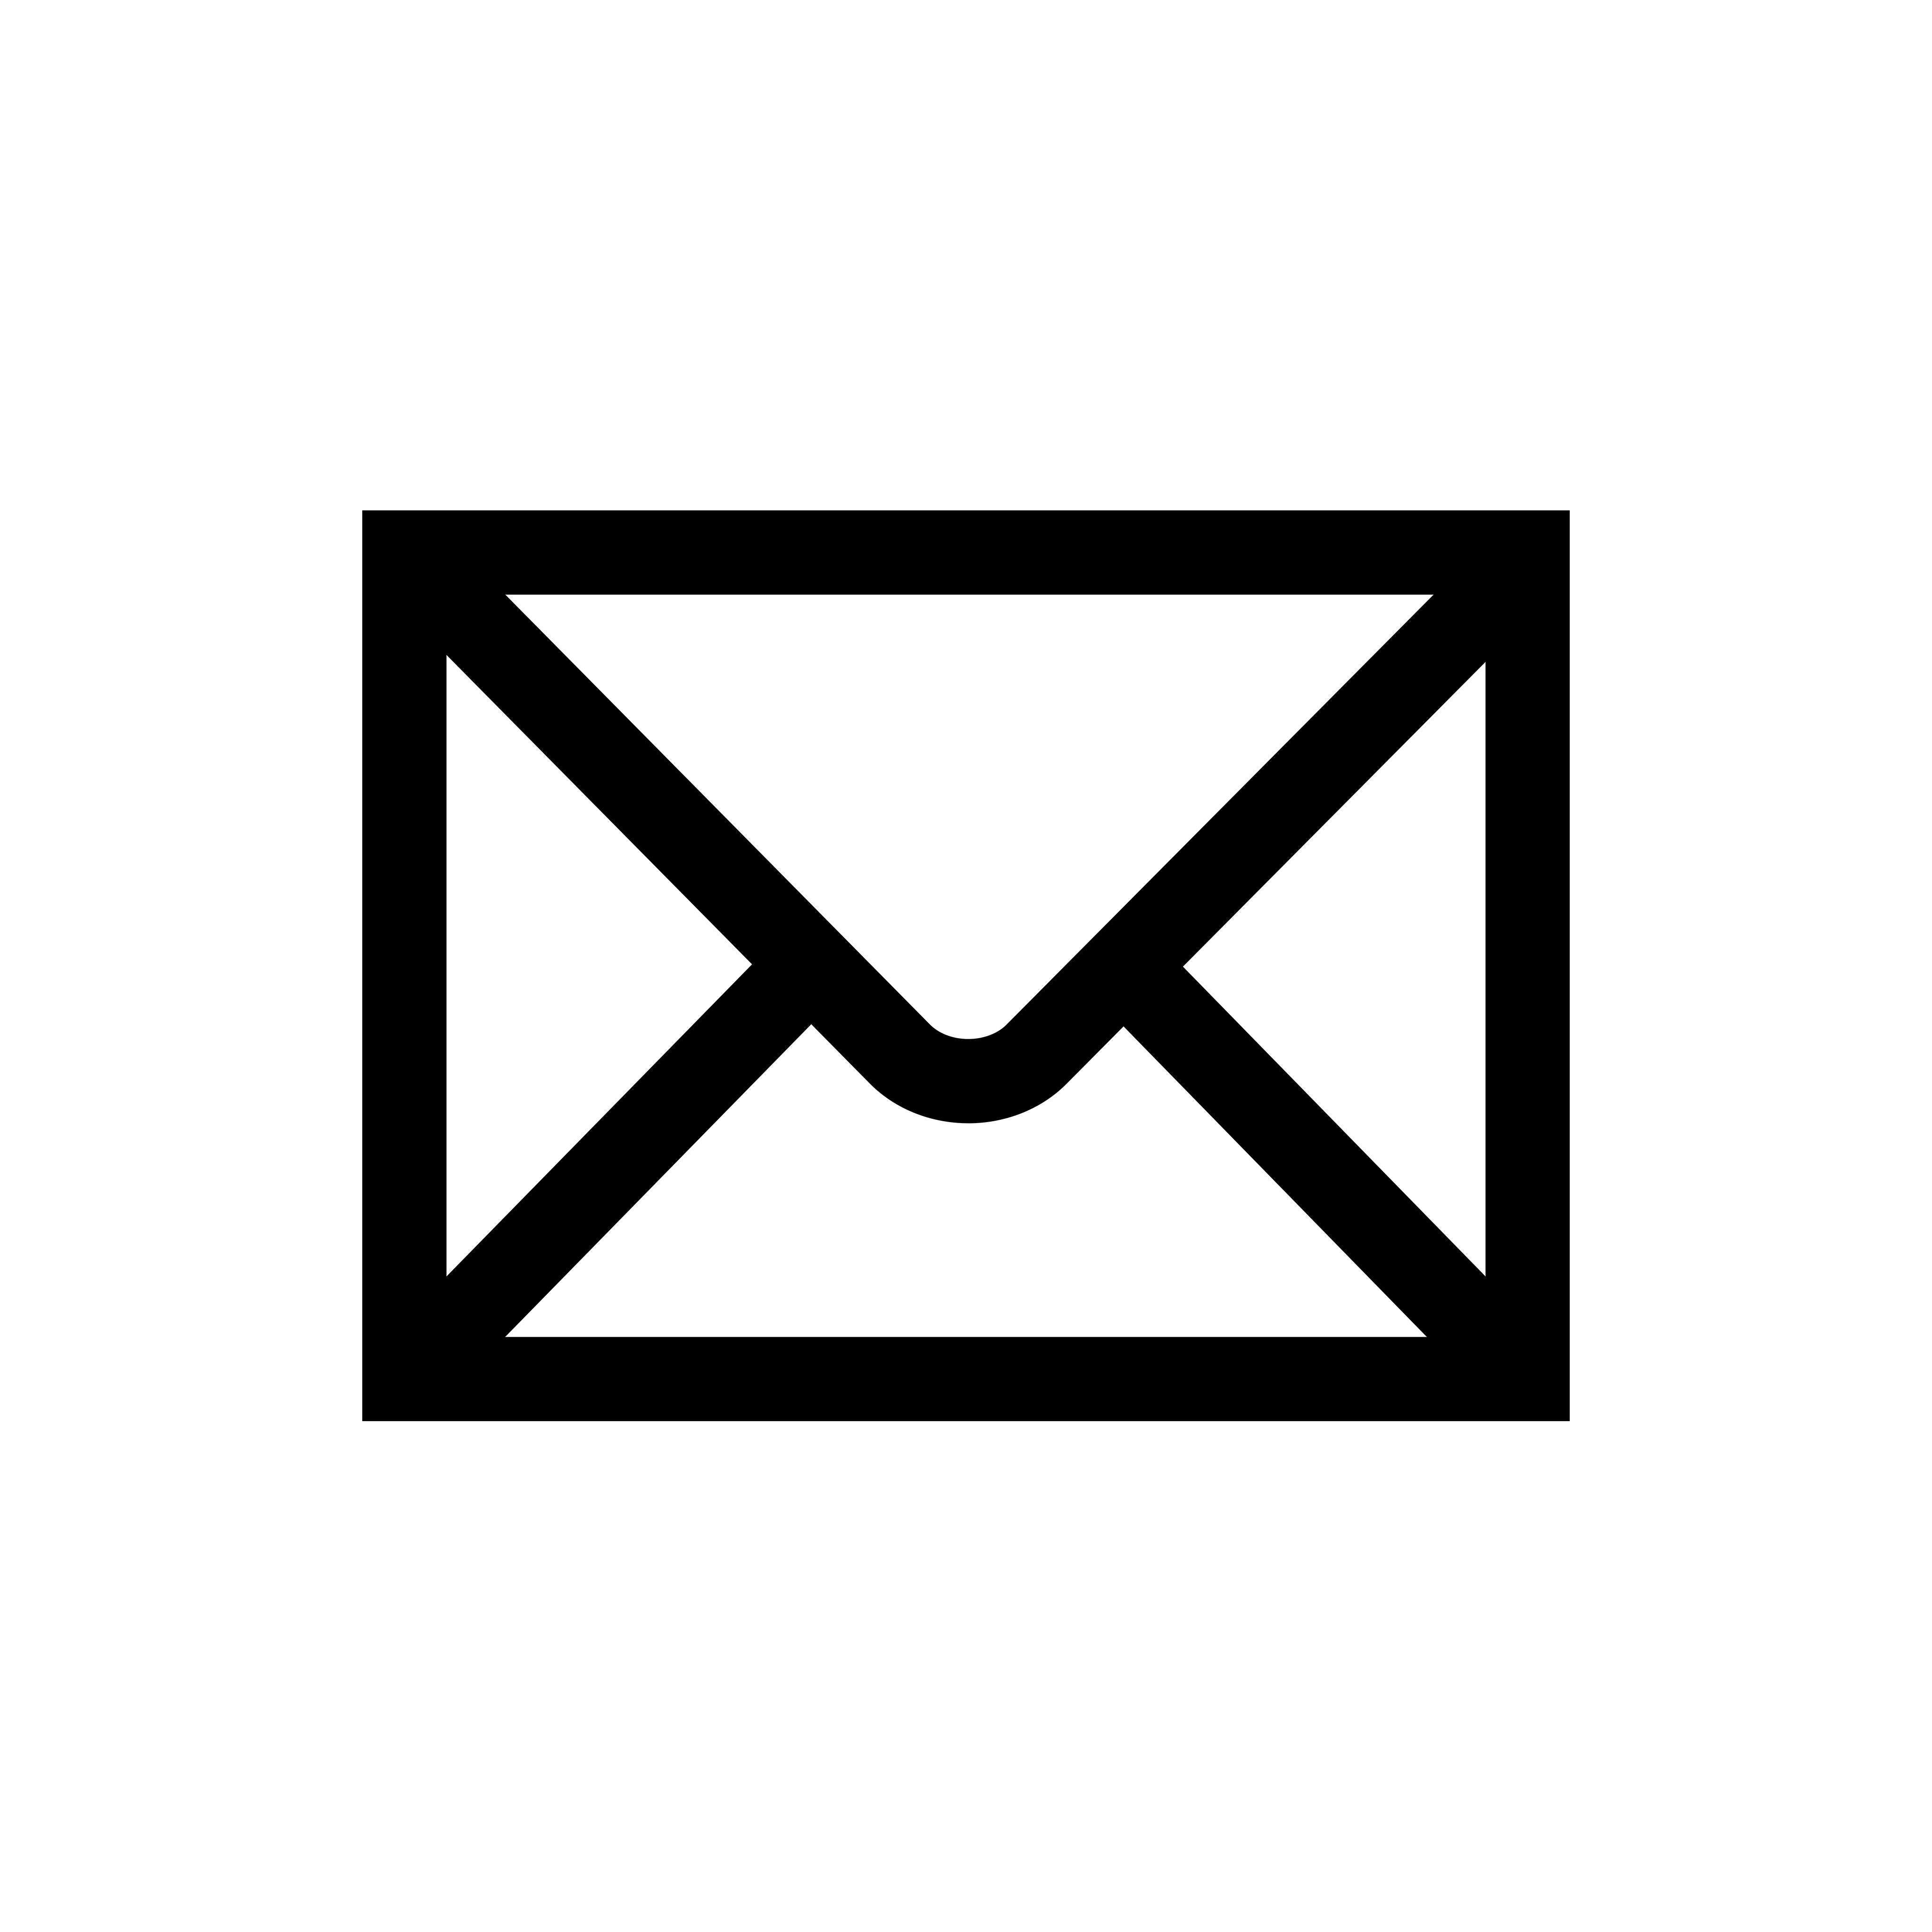 Mail PNG HD Transparent Mail HD.PNG Images. | PlusPNG